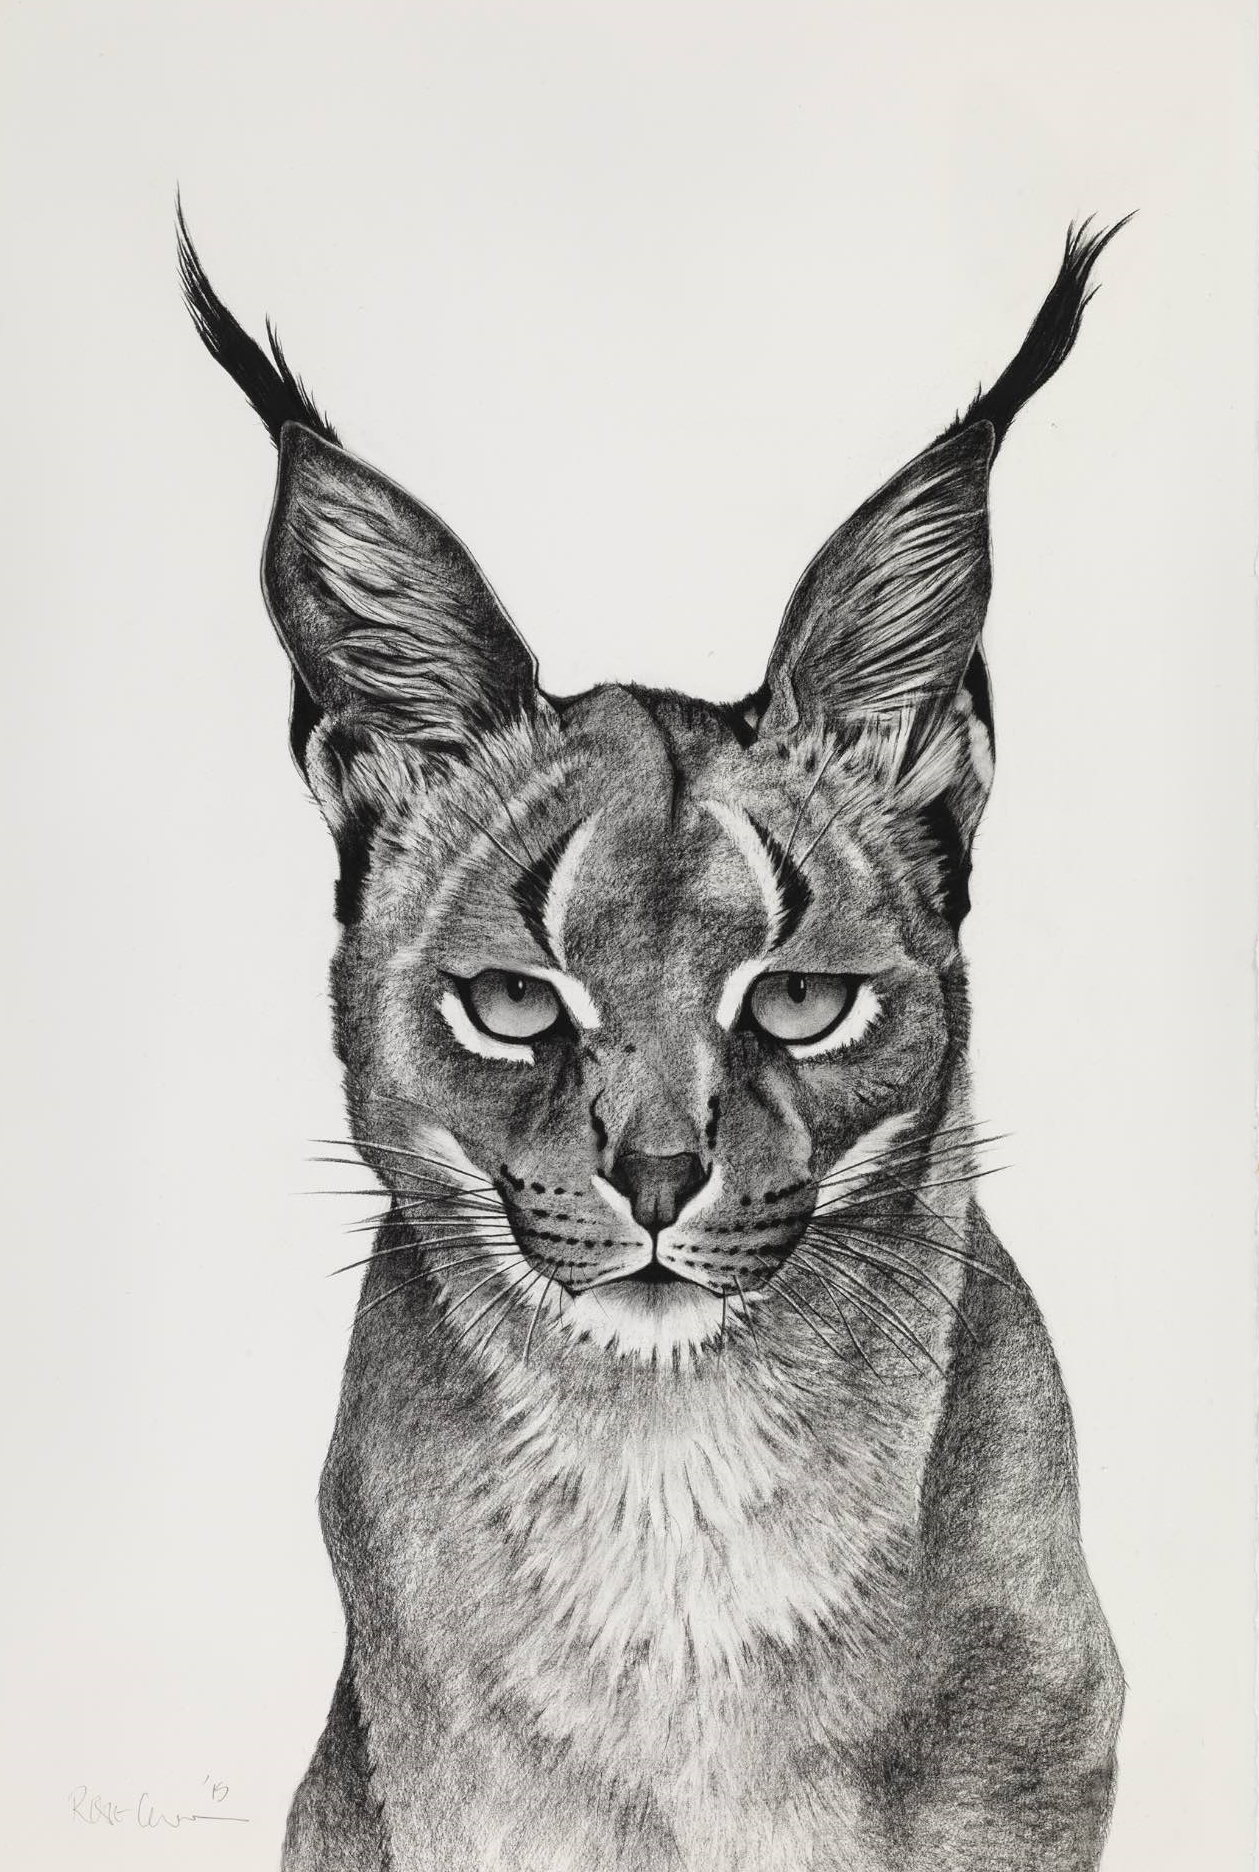 5. Caracal Observing